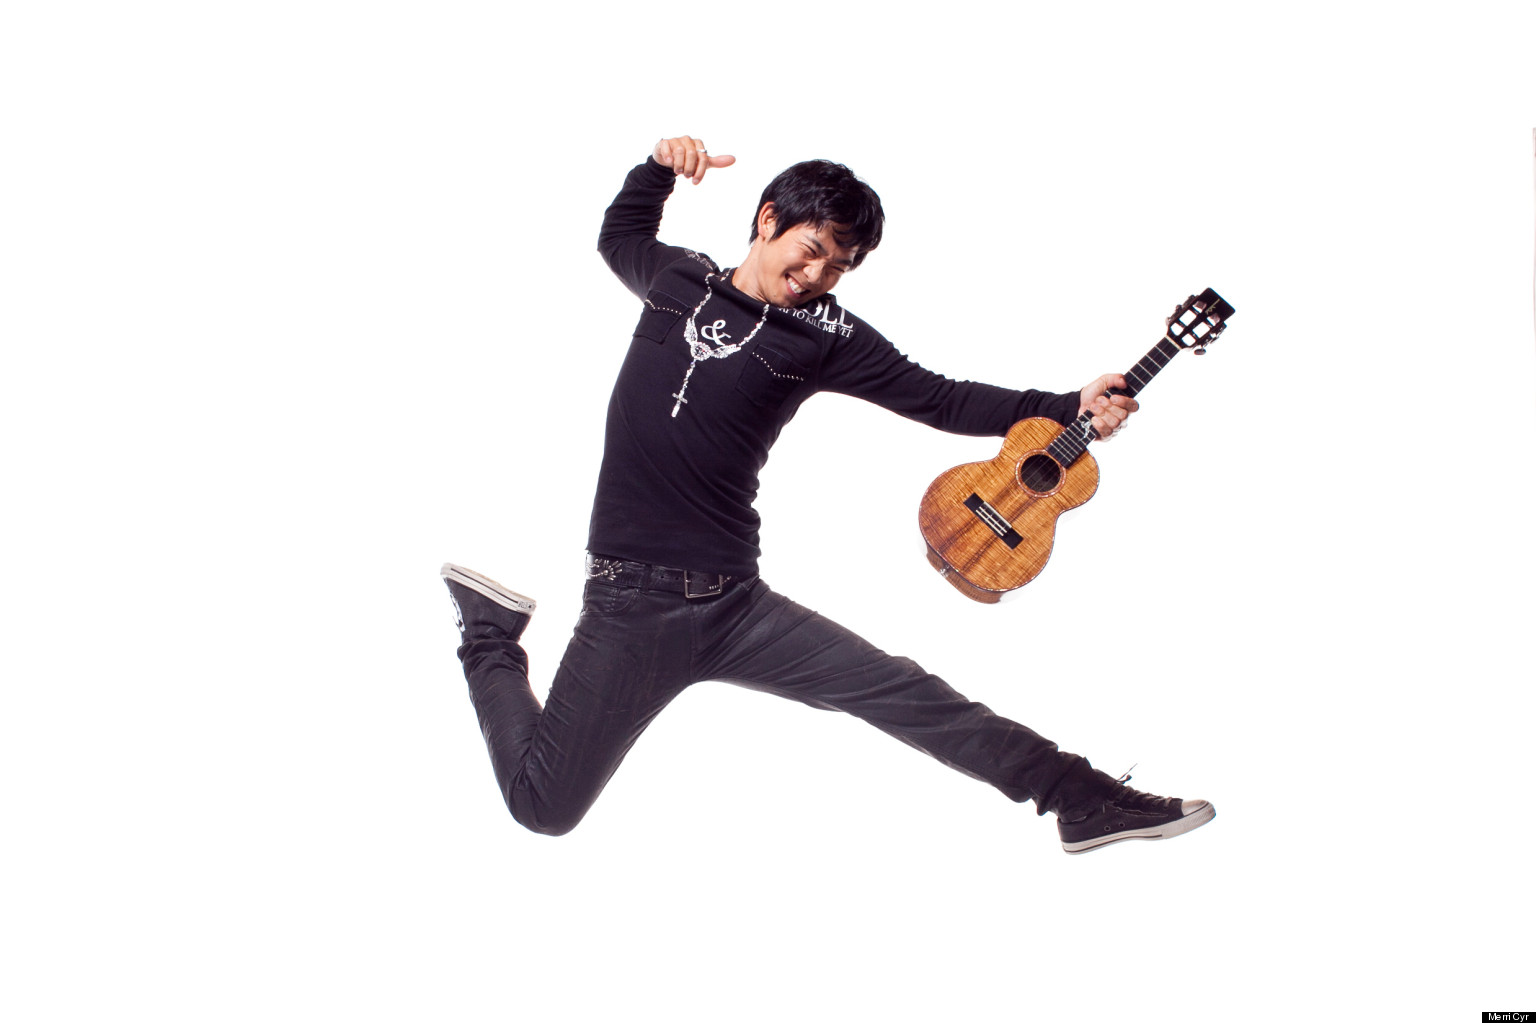 Jake Shimabukuro On His Ukulele Heroes, u0026#39;Rolling In The Deep,u0026#39; And His Dream Song To Cover ...